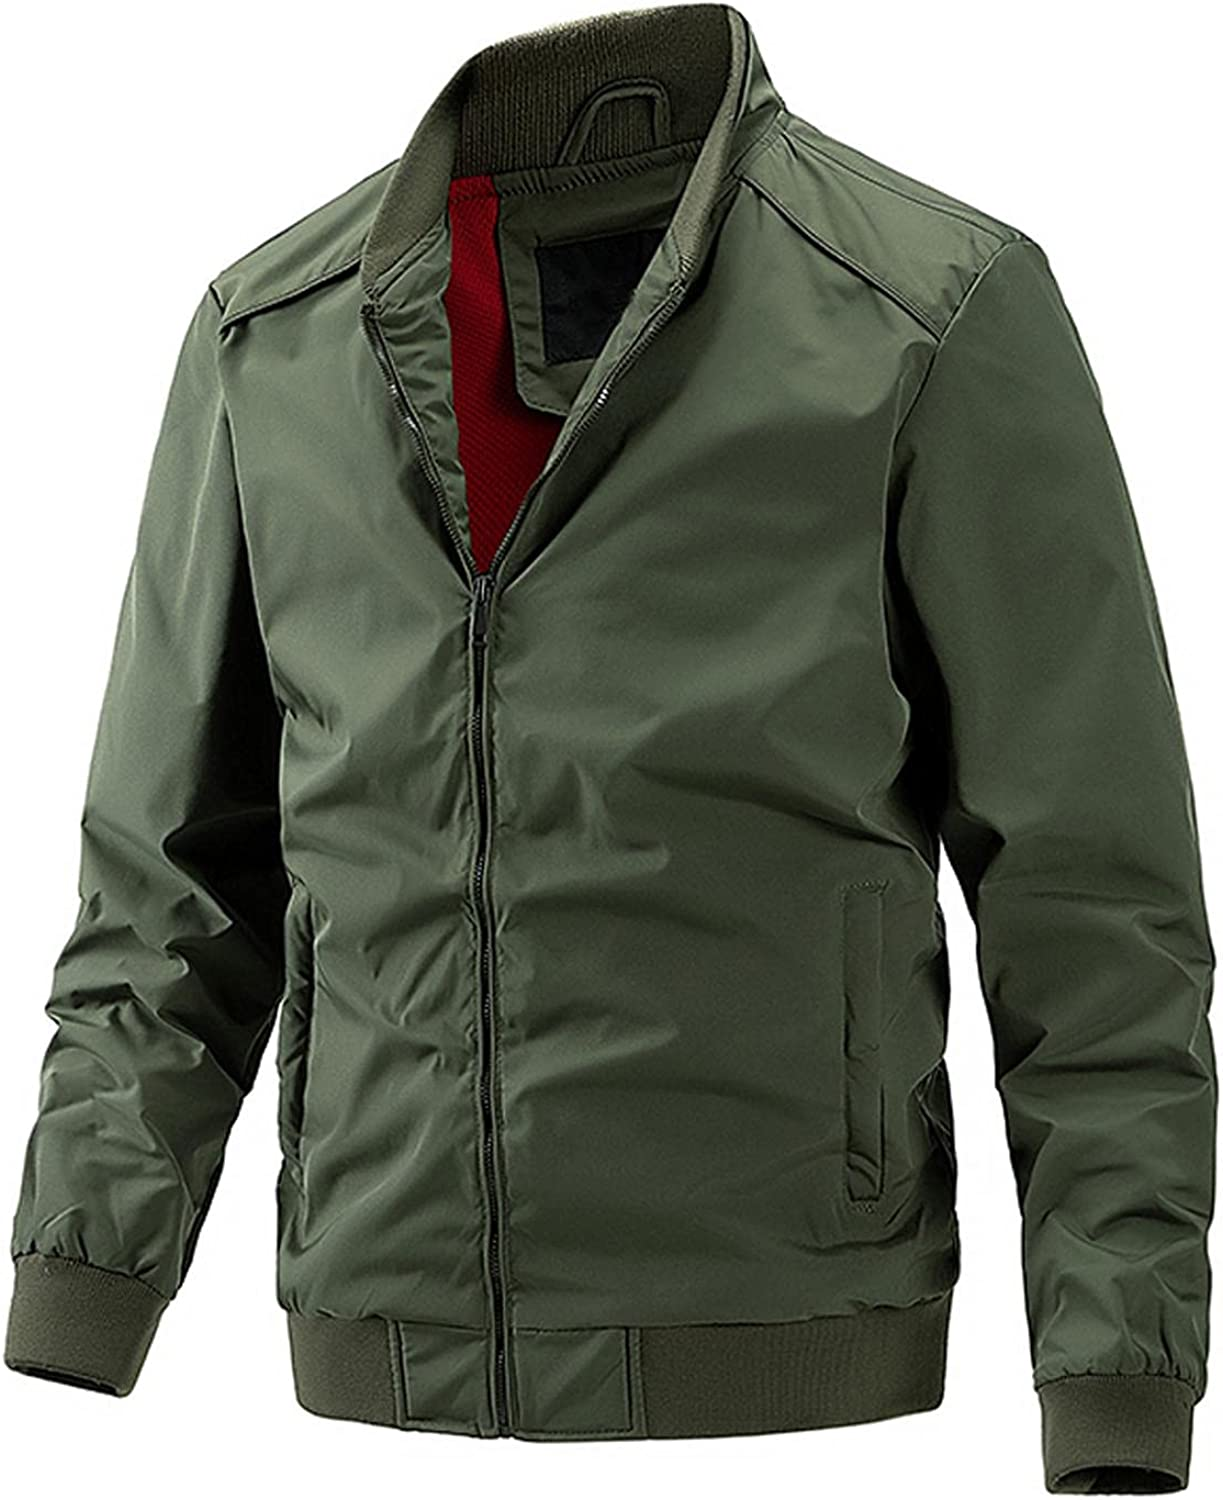 LEIYAN Mens Casual Cargo Military Jackets Long Sleeve Zip Up Relaxed Fit Bomber Softshell Jackets with Pockets